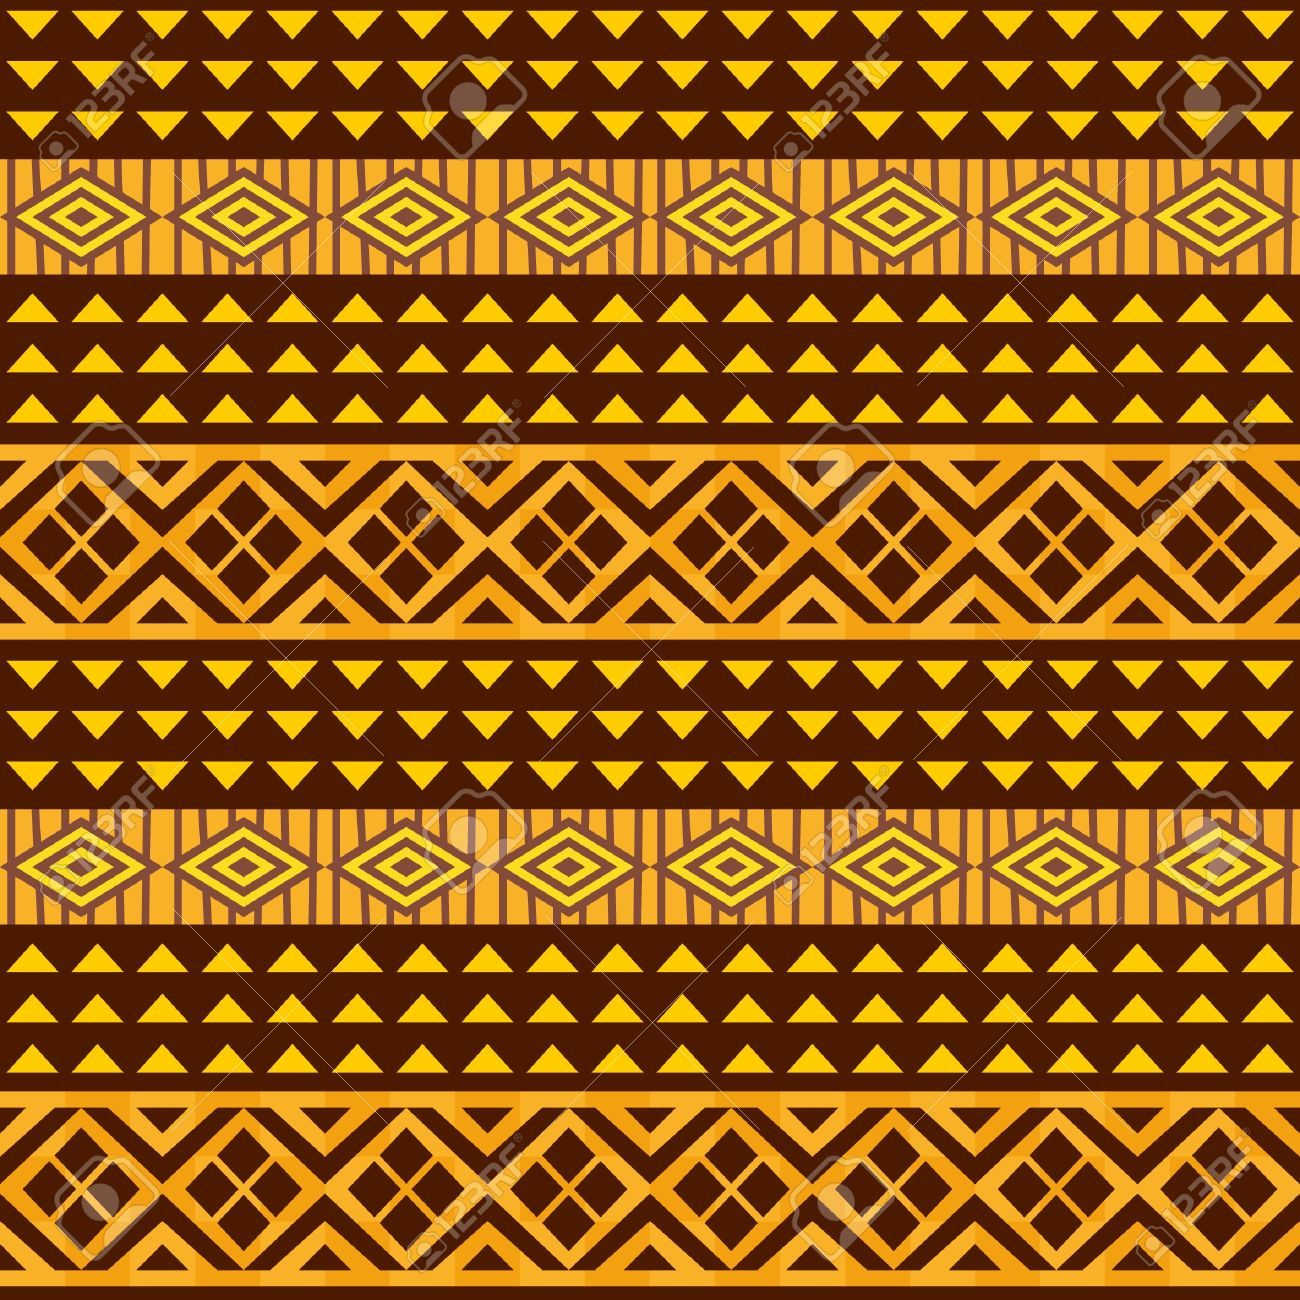 traditional african motif - Google Search | Stellenbosch ... Traditional African Patterns